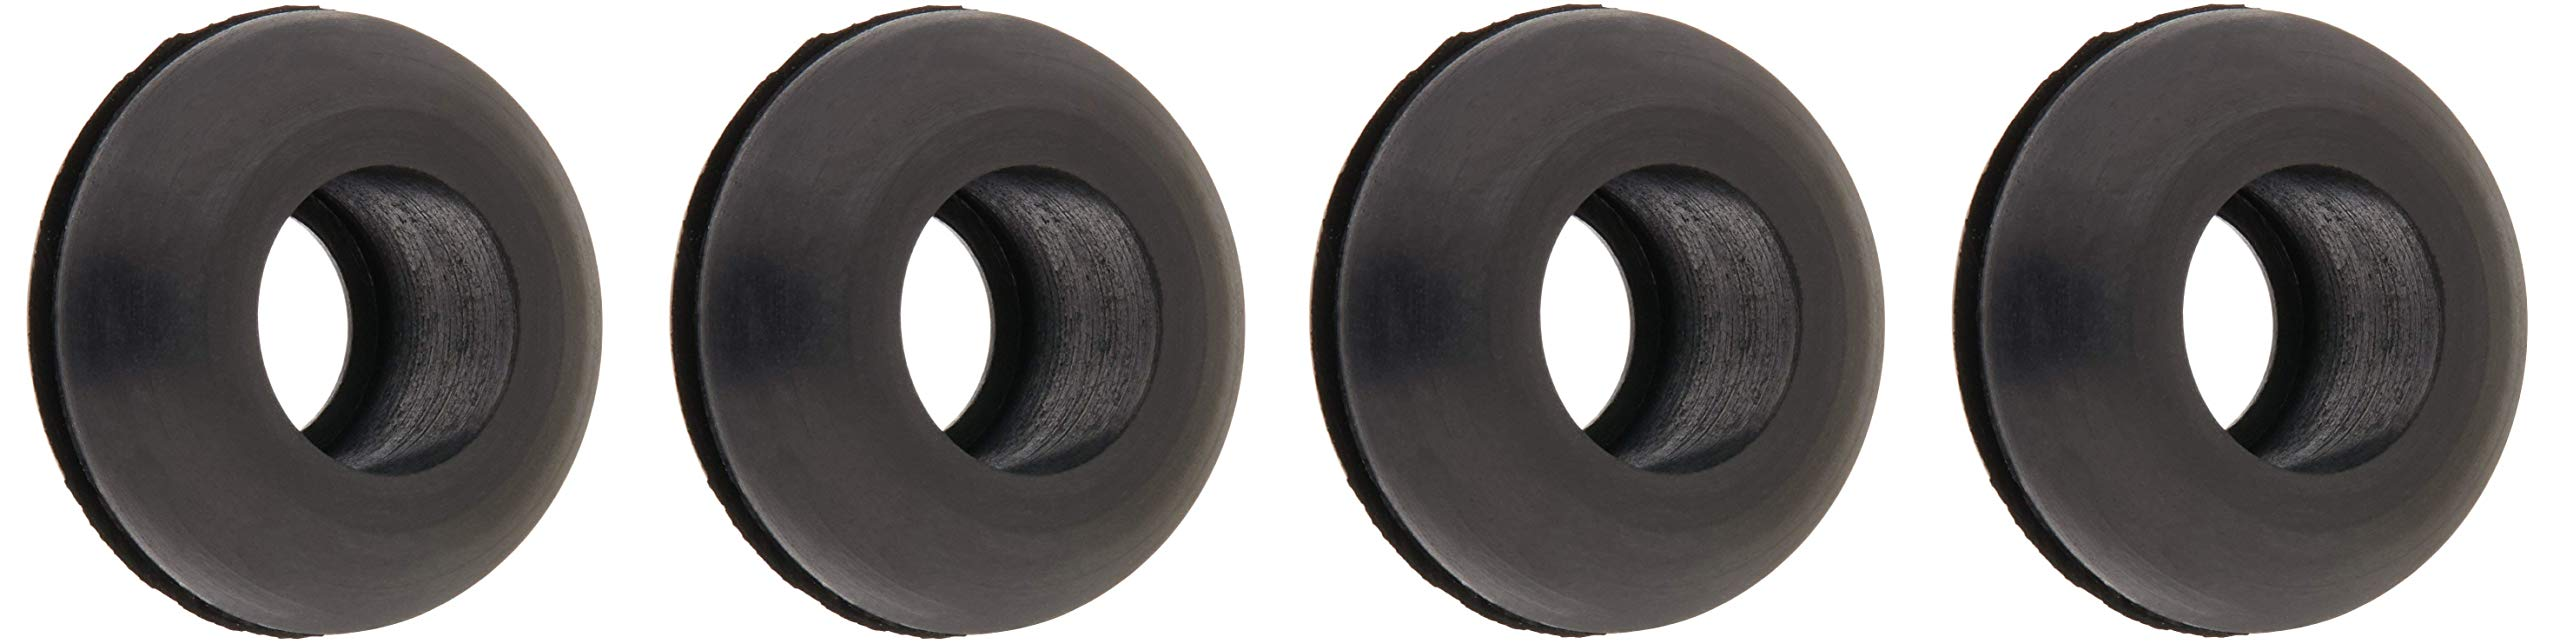 Hydro Flow Rubber Grommet 1/2 Inch, Bag of 10 (Fоur Расk)